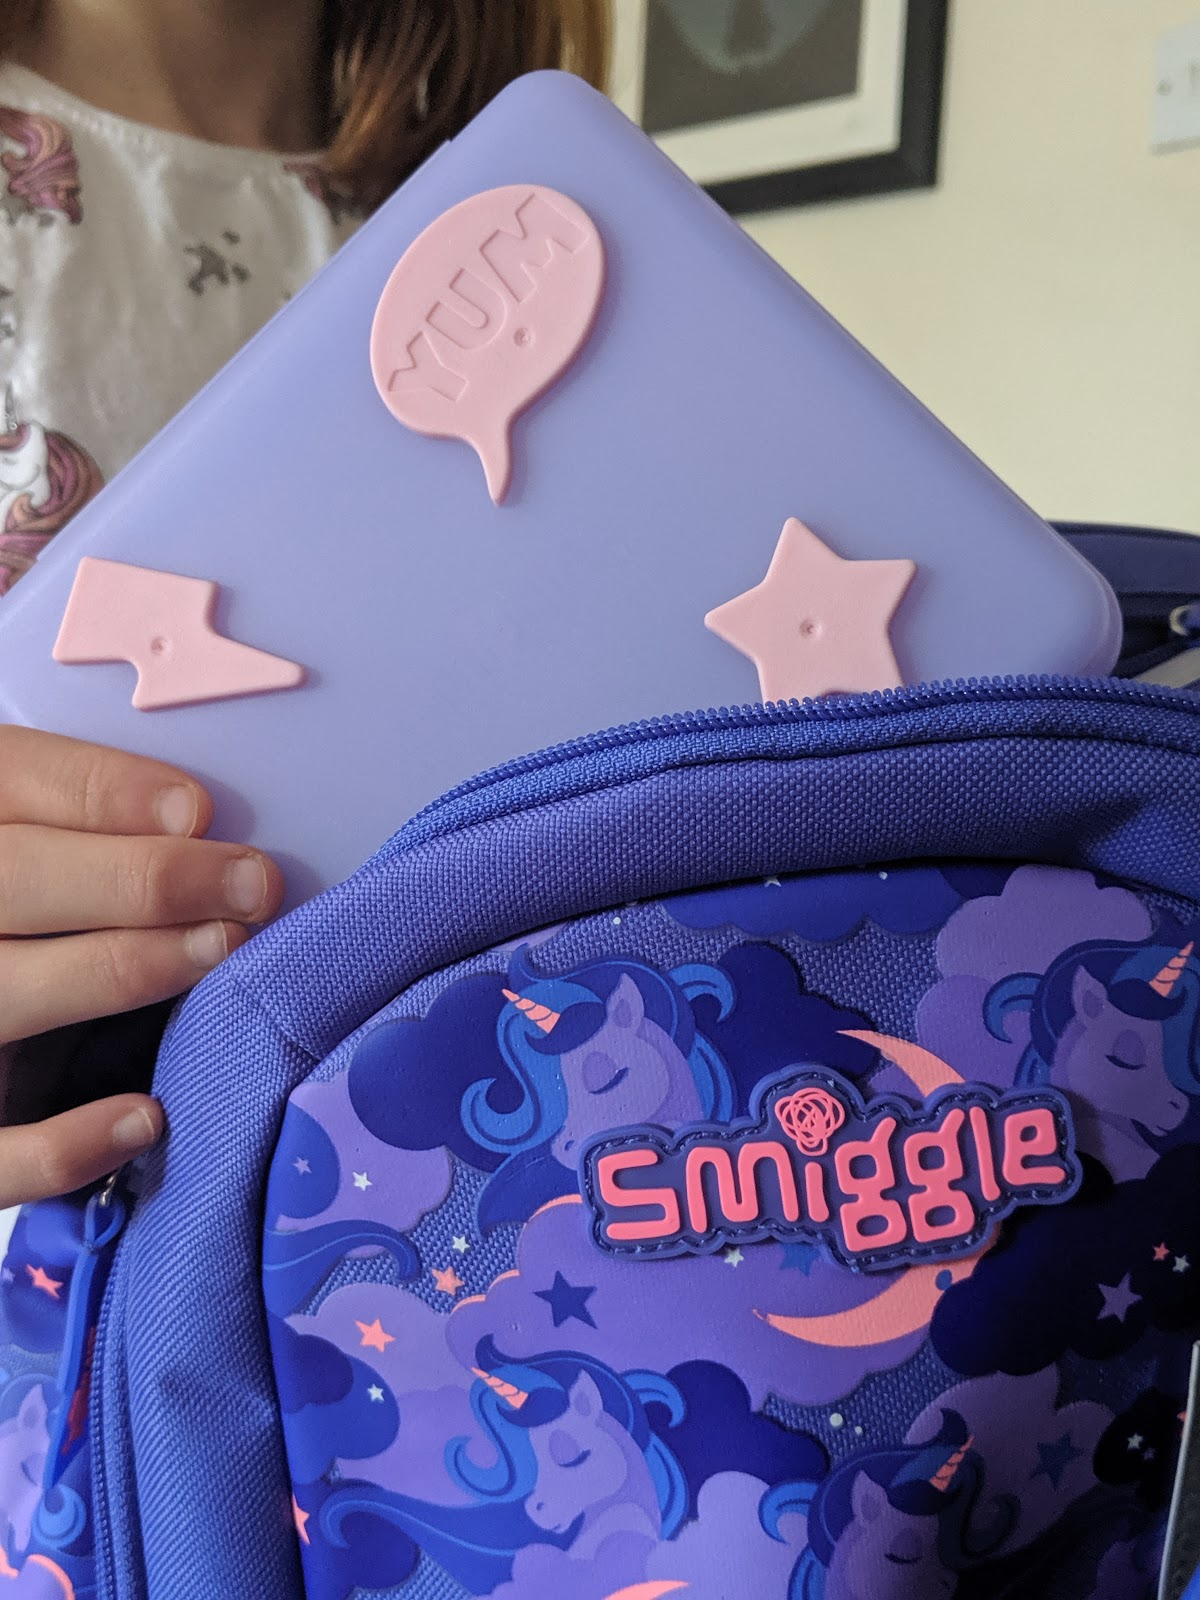 Top Tips for Surviving Year 6 at School (& Smiggle giveaway) - Smiggle Sandwich Box and Backpack